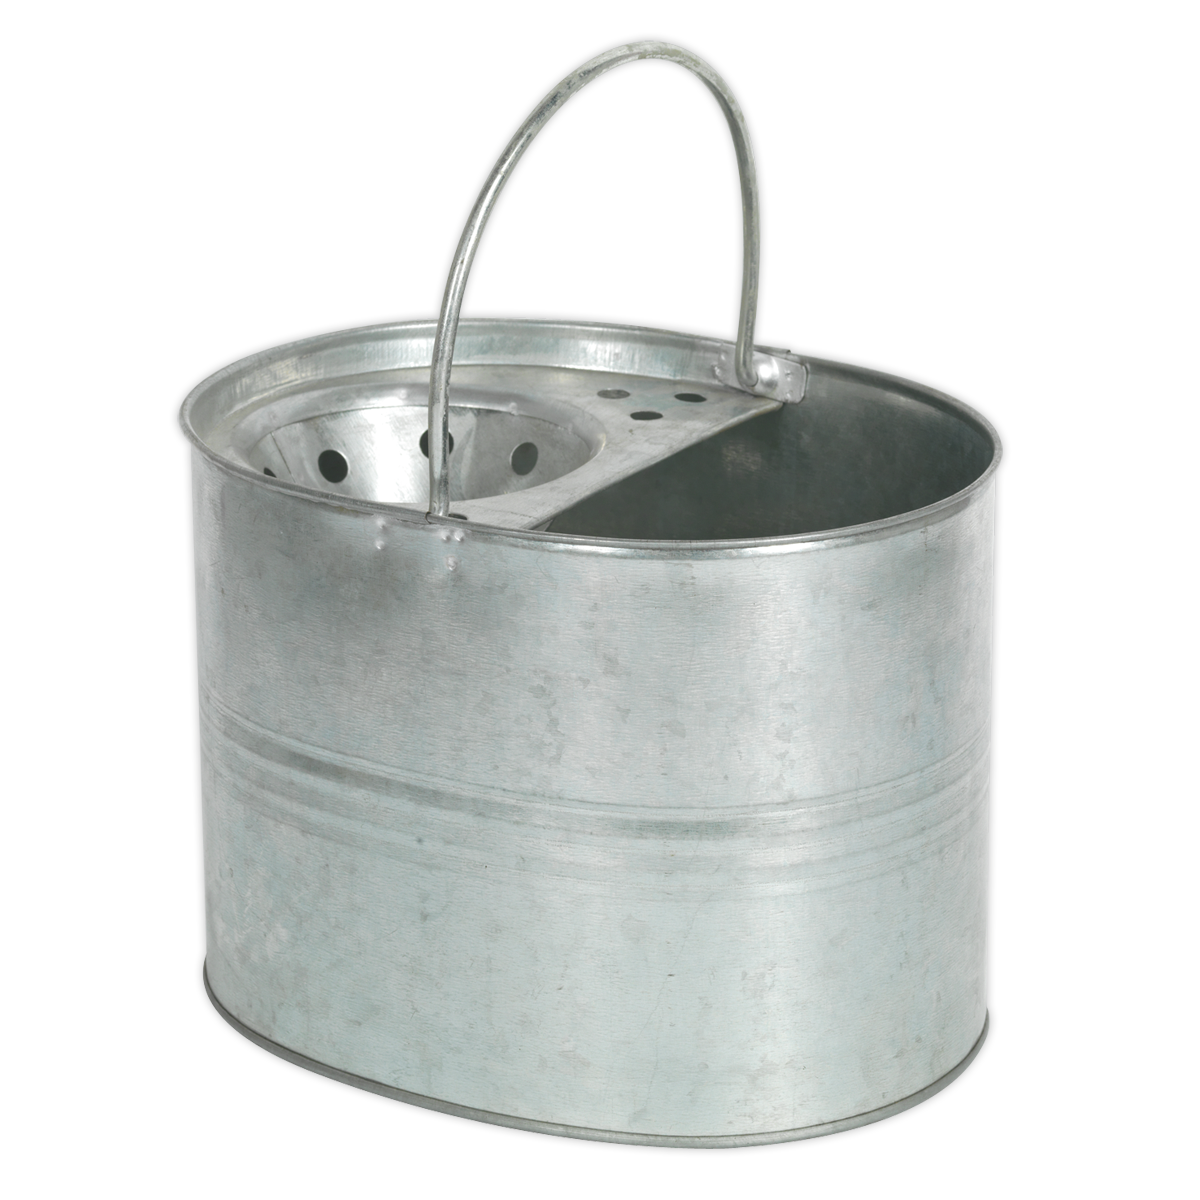 Mop Bucket 13ltr - Galvanized Sealey BM08 by Sealey New